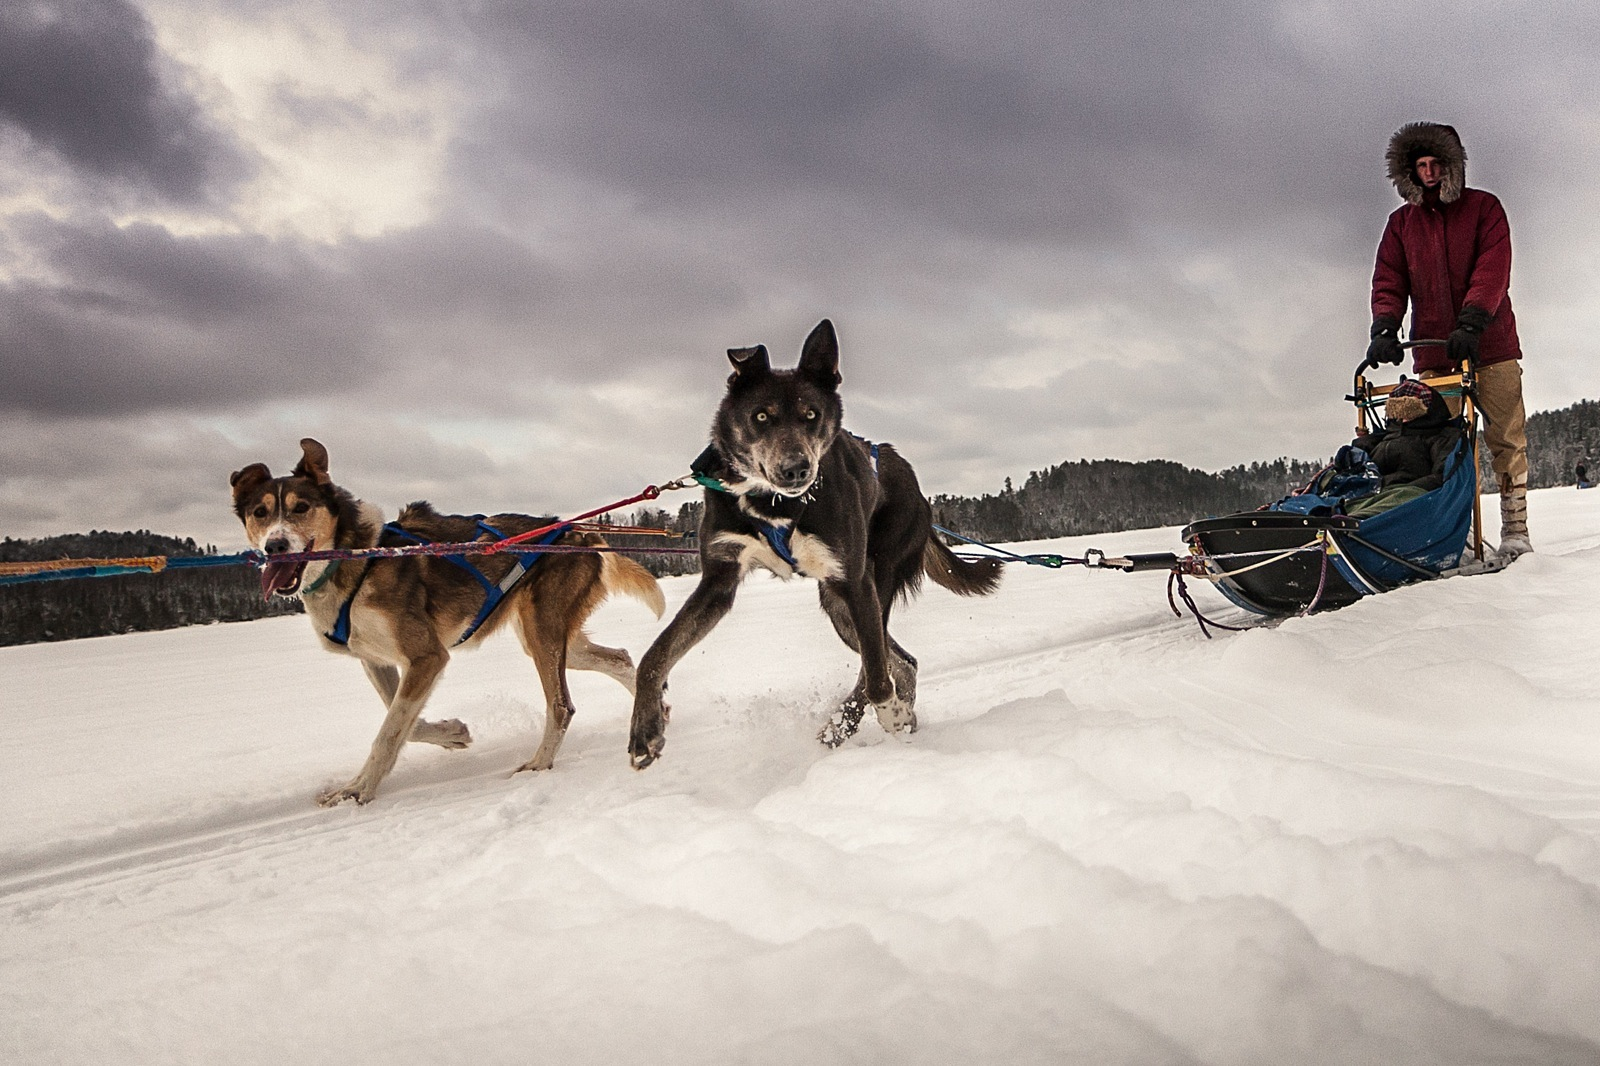 Two dogs pulling a sled look towards the camera.